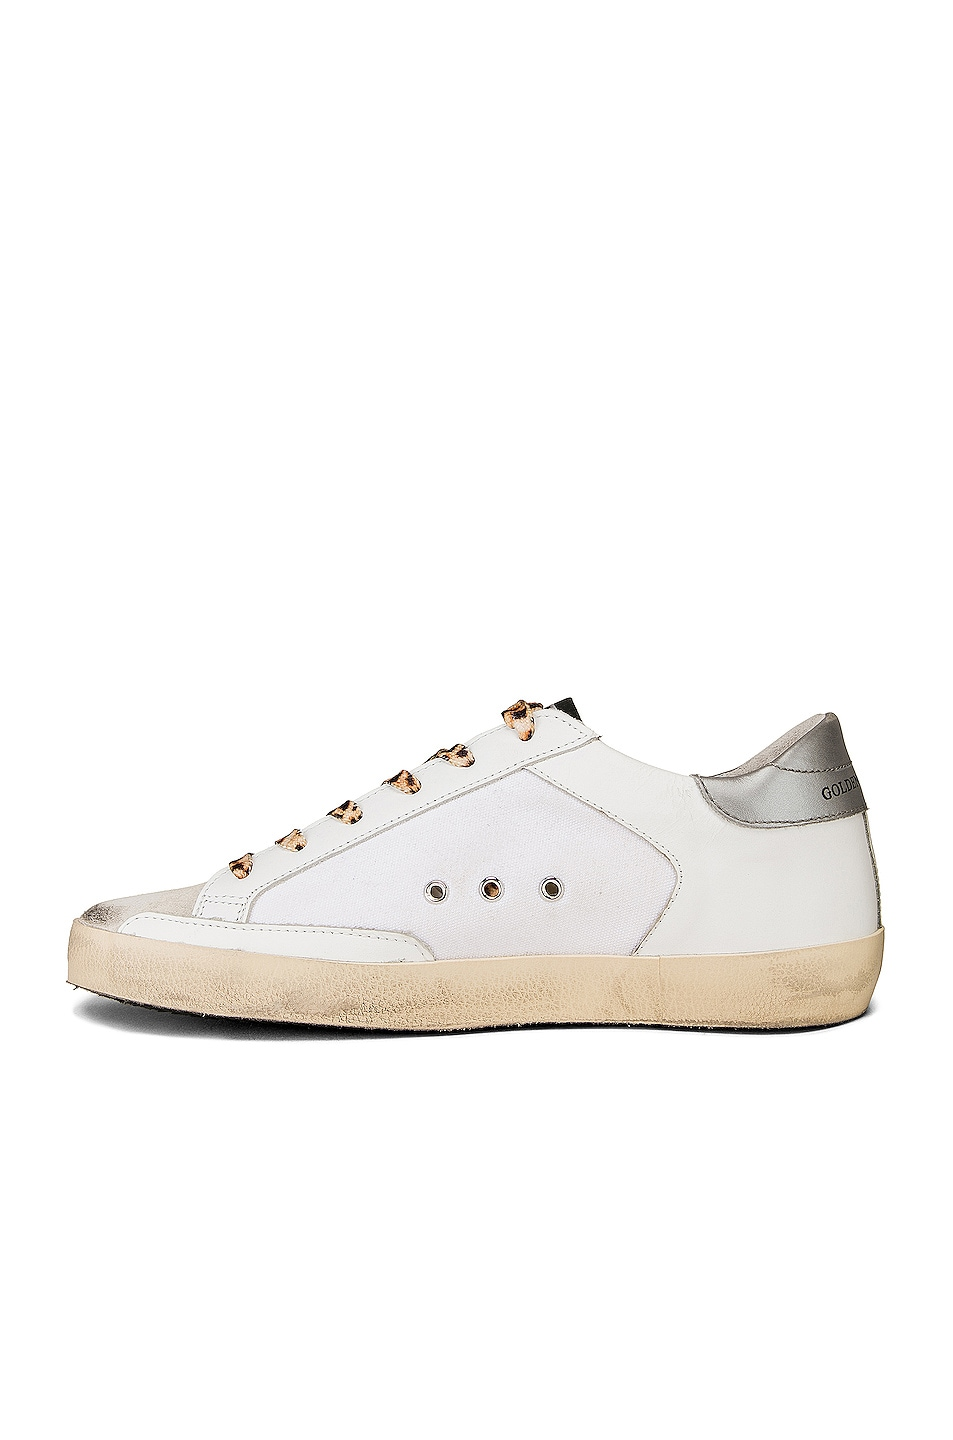 Image 5 of Golden Goose Leopard Lace Superstar Sneakers in White Canvas & Fluorescent